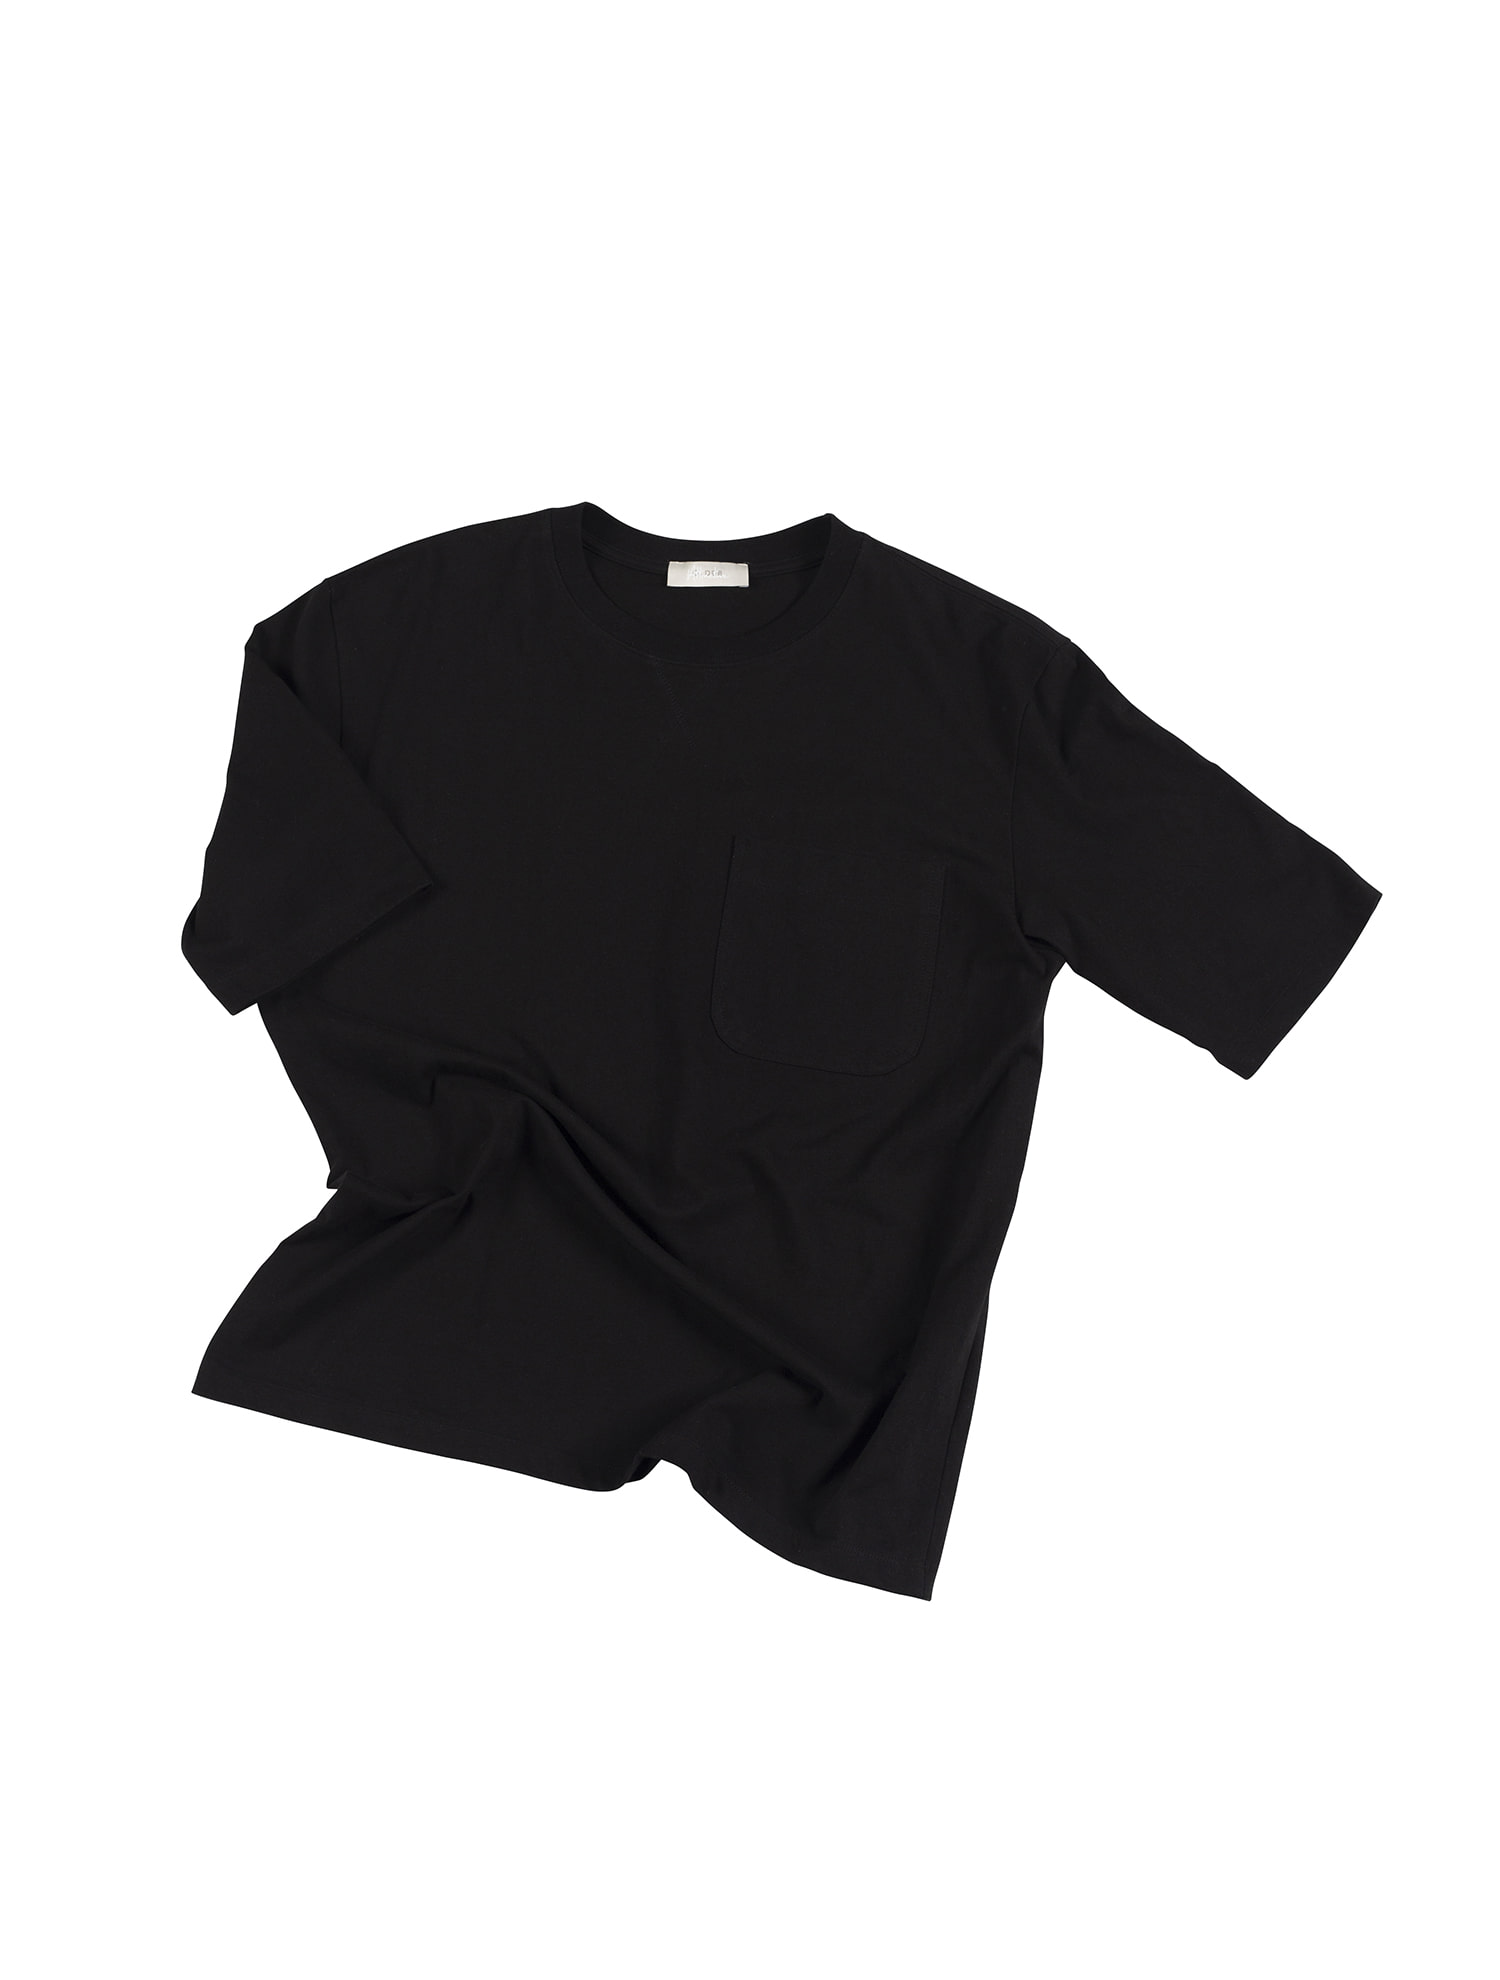 [올드비] ATTRACTIVE Crew neck Pocket Tee - Black